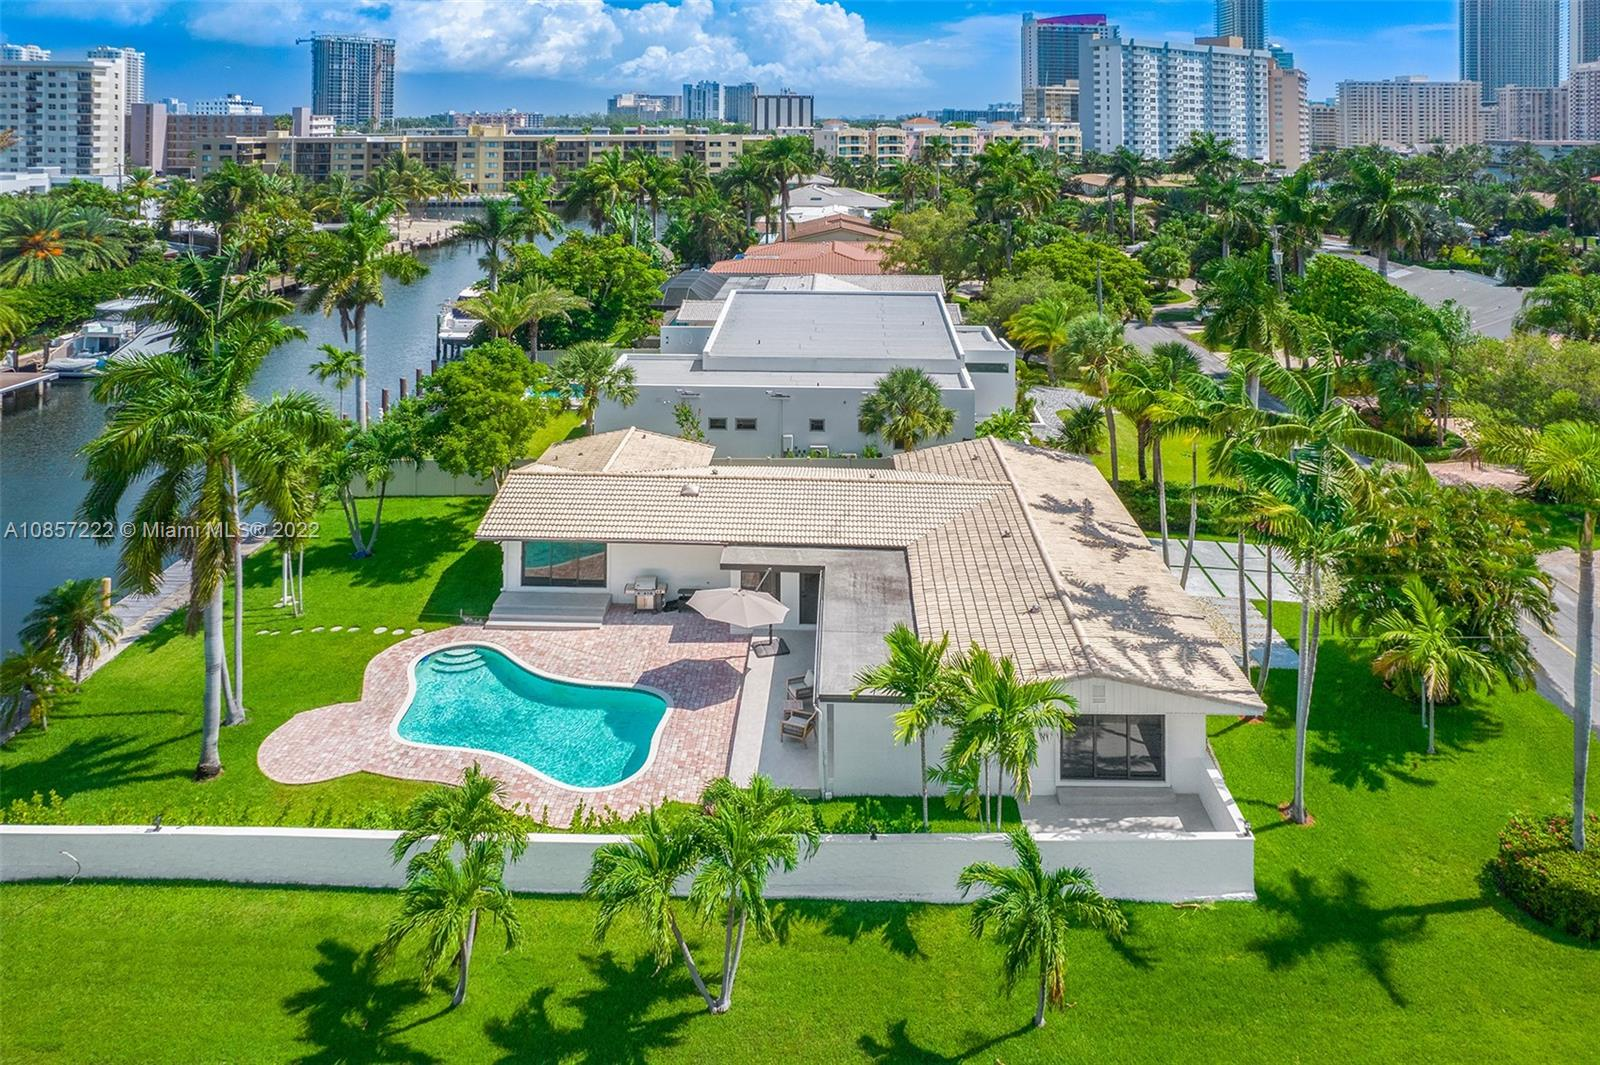 ONE-STORY CORNER WATERFRONT HOME ON 85' X 135' LOT, BUILD YOUR NEW WATERFRONT ESTATE. OCEAN ACCESS AND NO FIXED BRIDGES. CENTRALLY LOCATED BETWEEN BOTH MIAMI AND FORT LAUDERDALE./